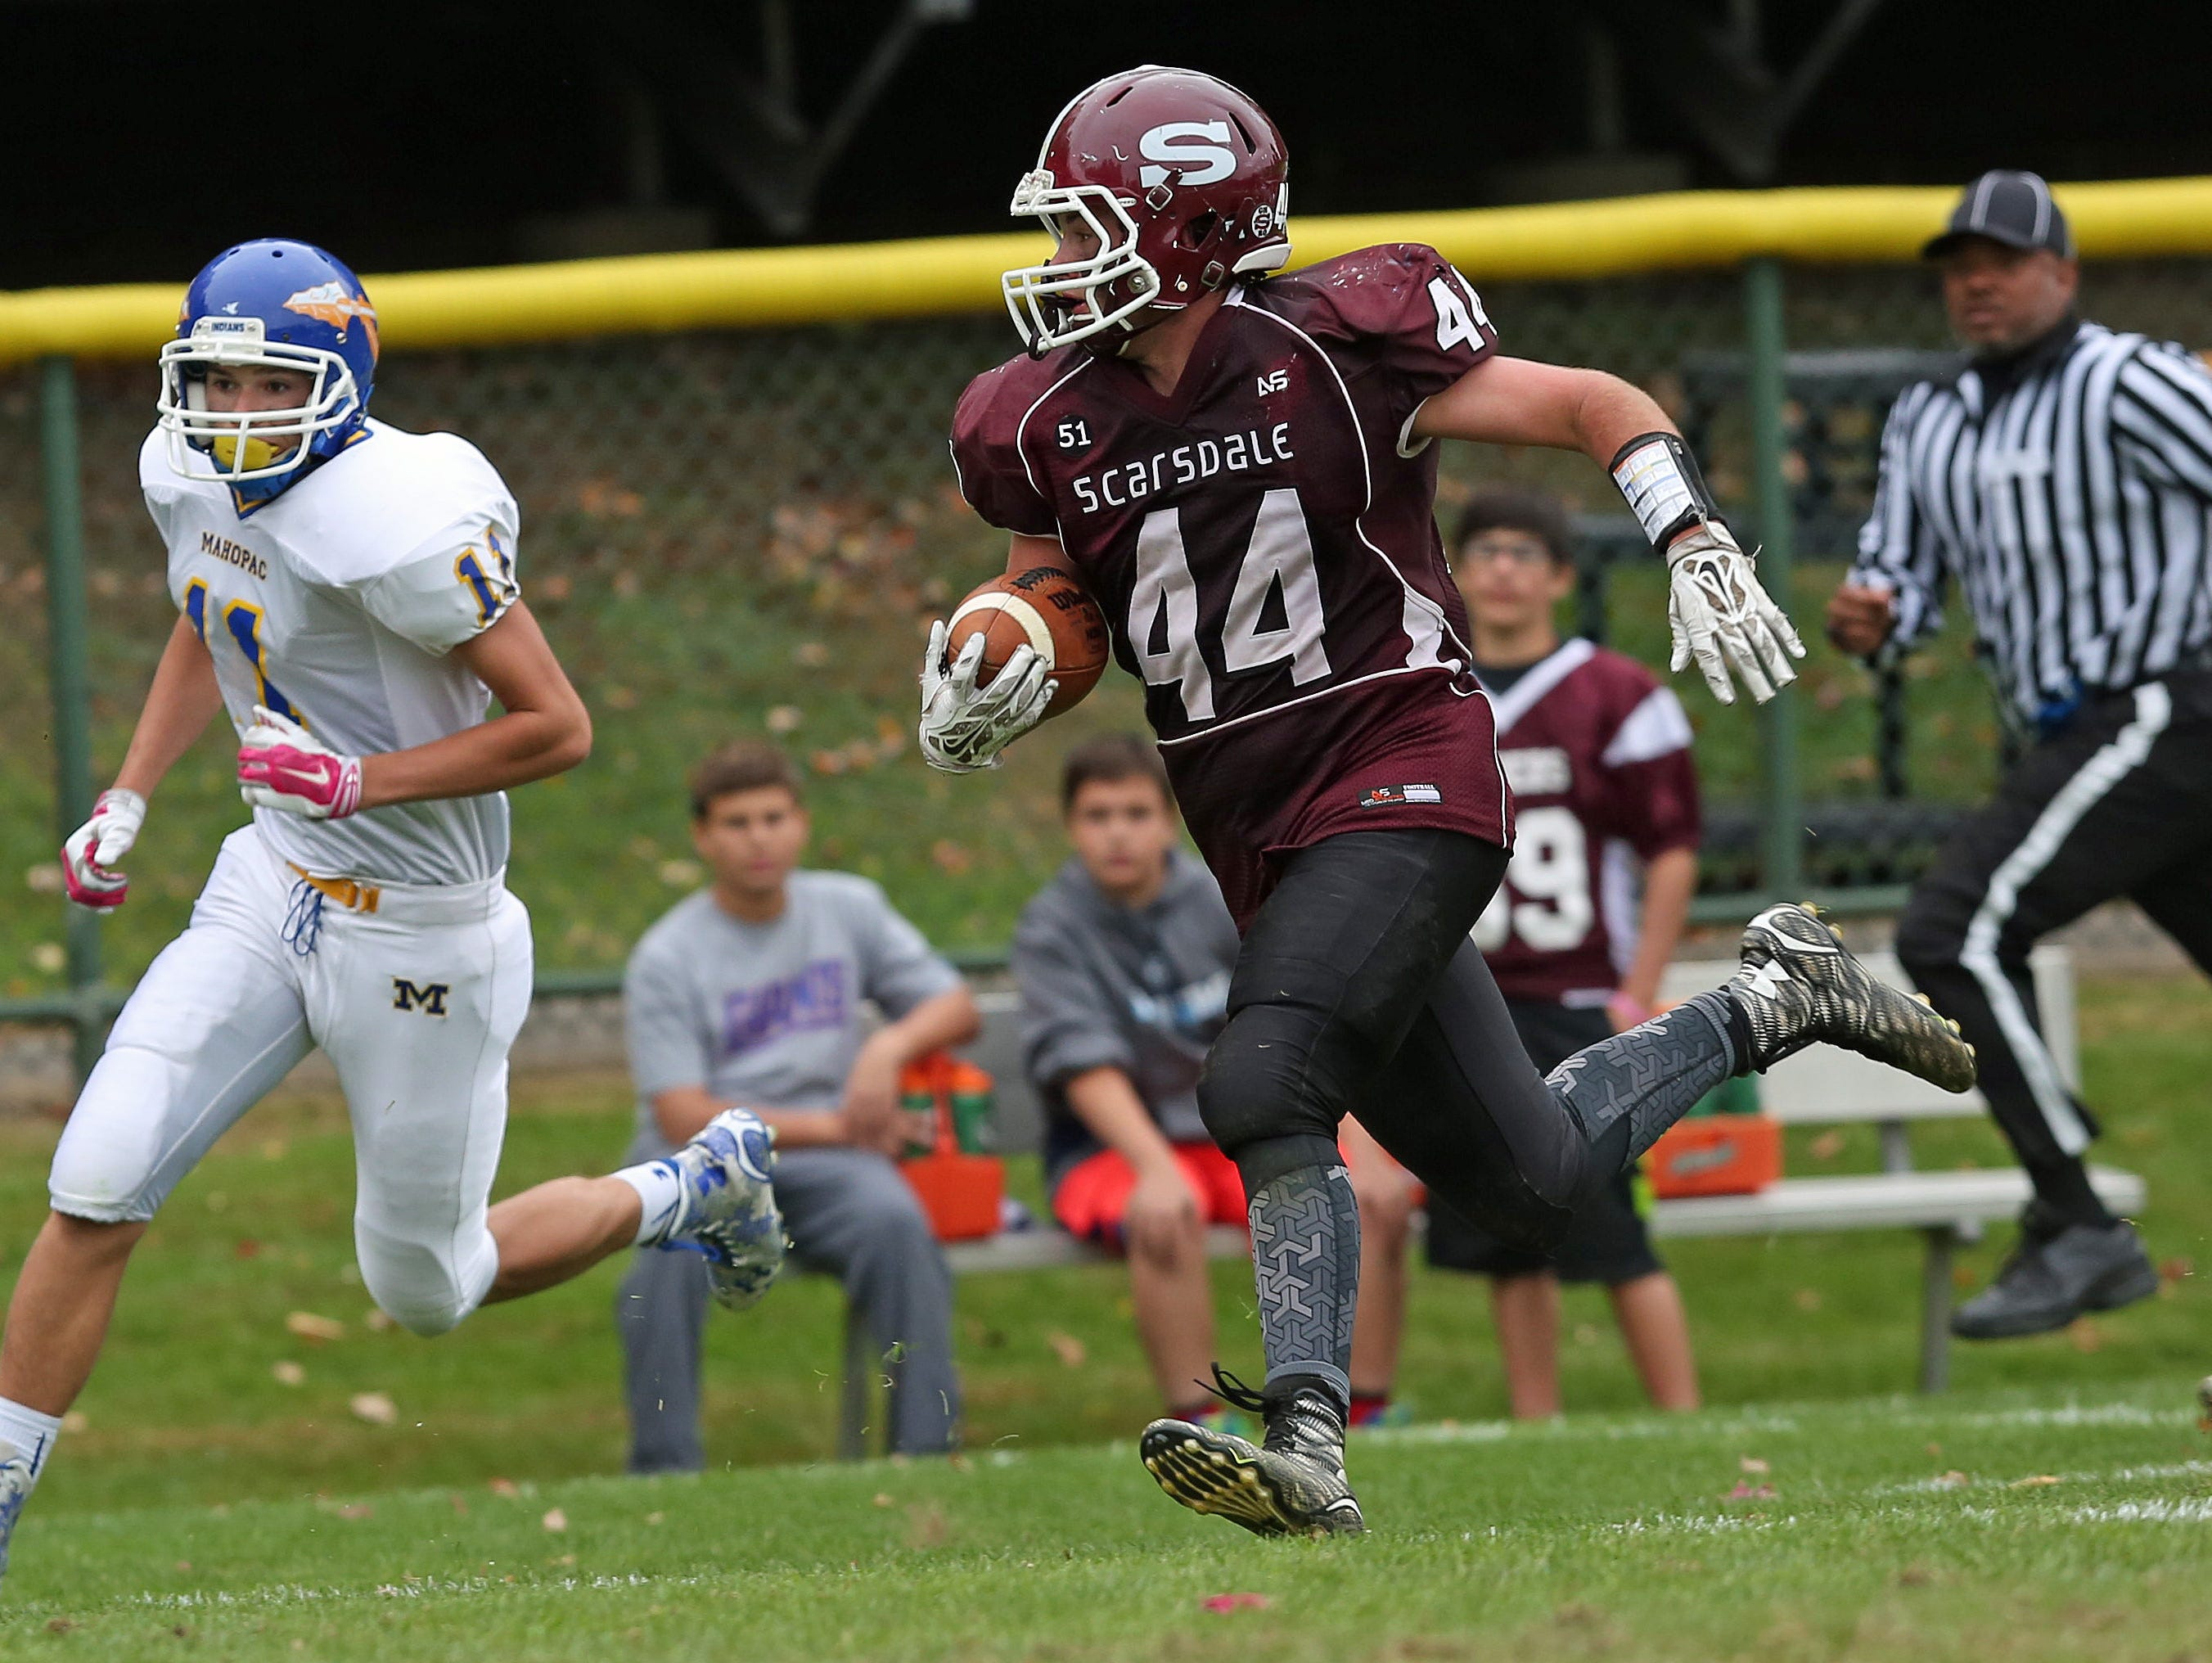 Scarsdale's Stephen Nicholas (44) breaks away from Mahopac's Jonathan Jacklett (11)free on a first half touchdown run against Mahopac during football playoff game at Scarsdale High School Oct. 24, 2015. Scarsdale won the game 33-28.